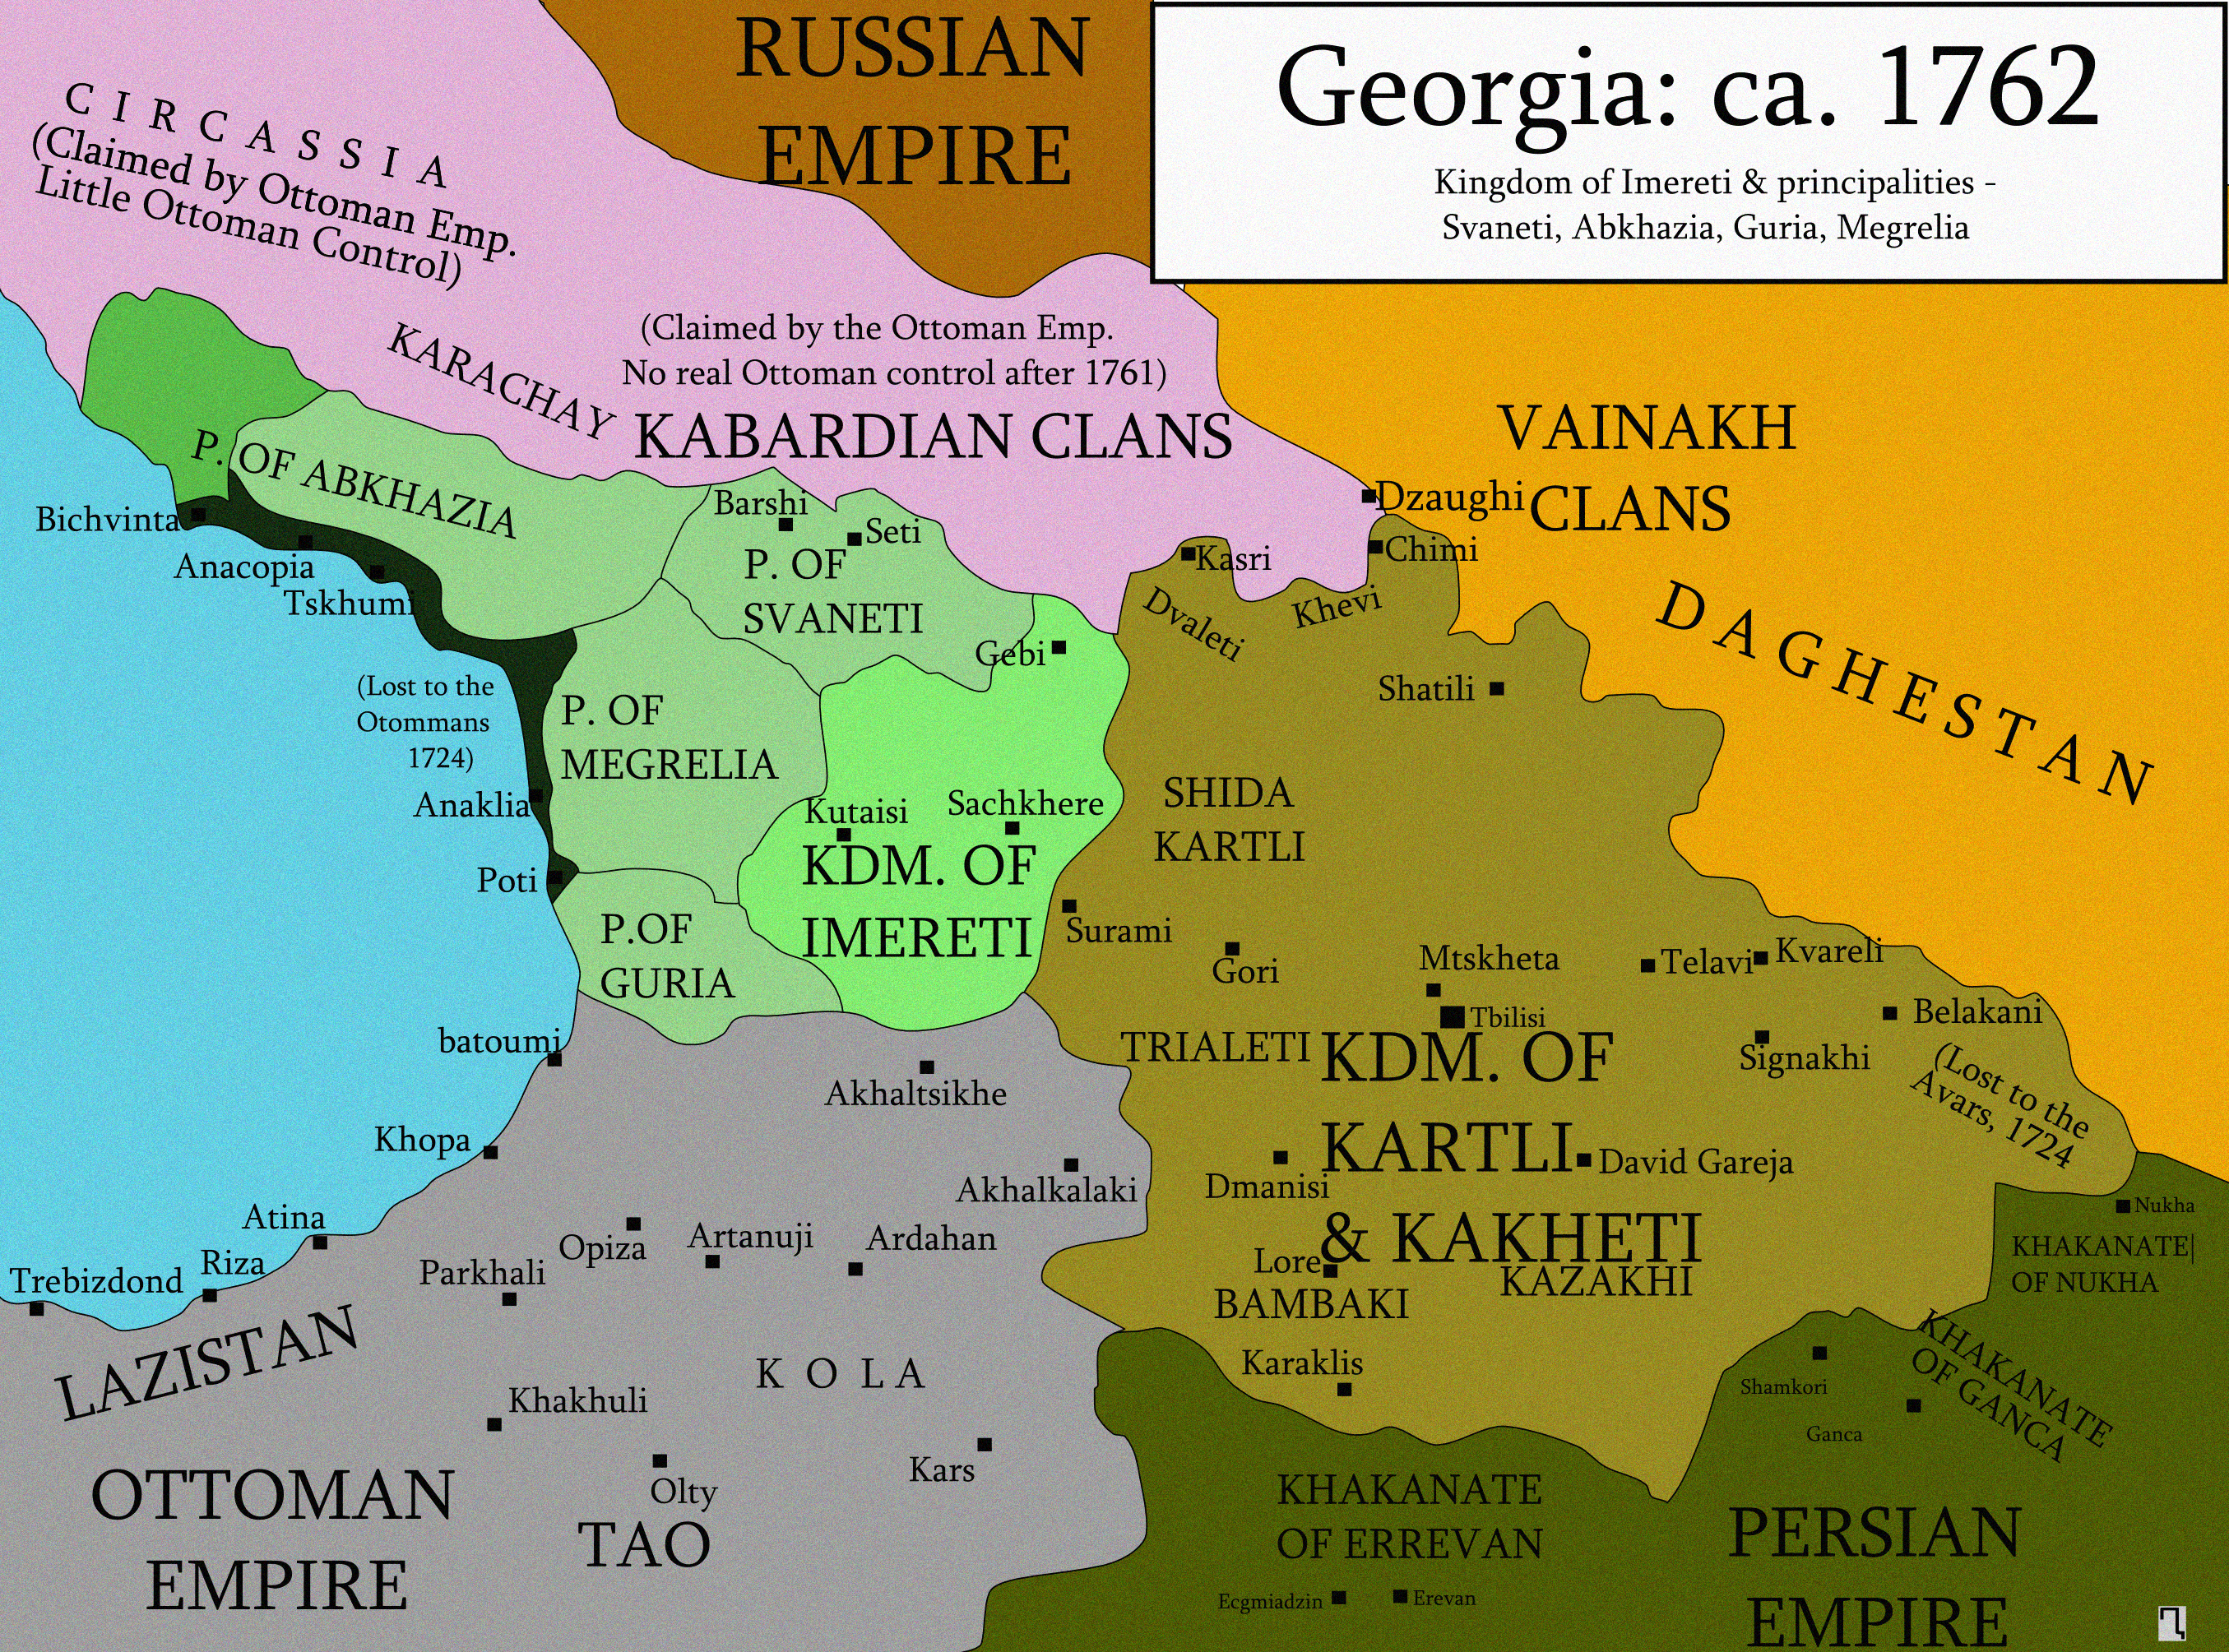 Georgia Abkhazia Alania And Armenia Historical Maps Monarchy - Georgia kakheti map